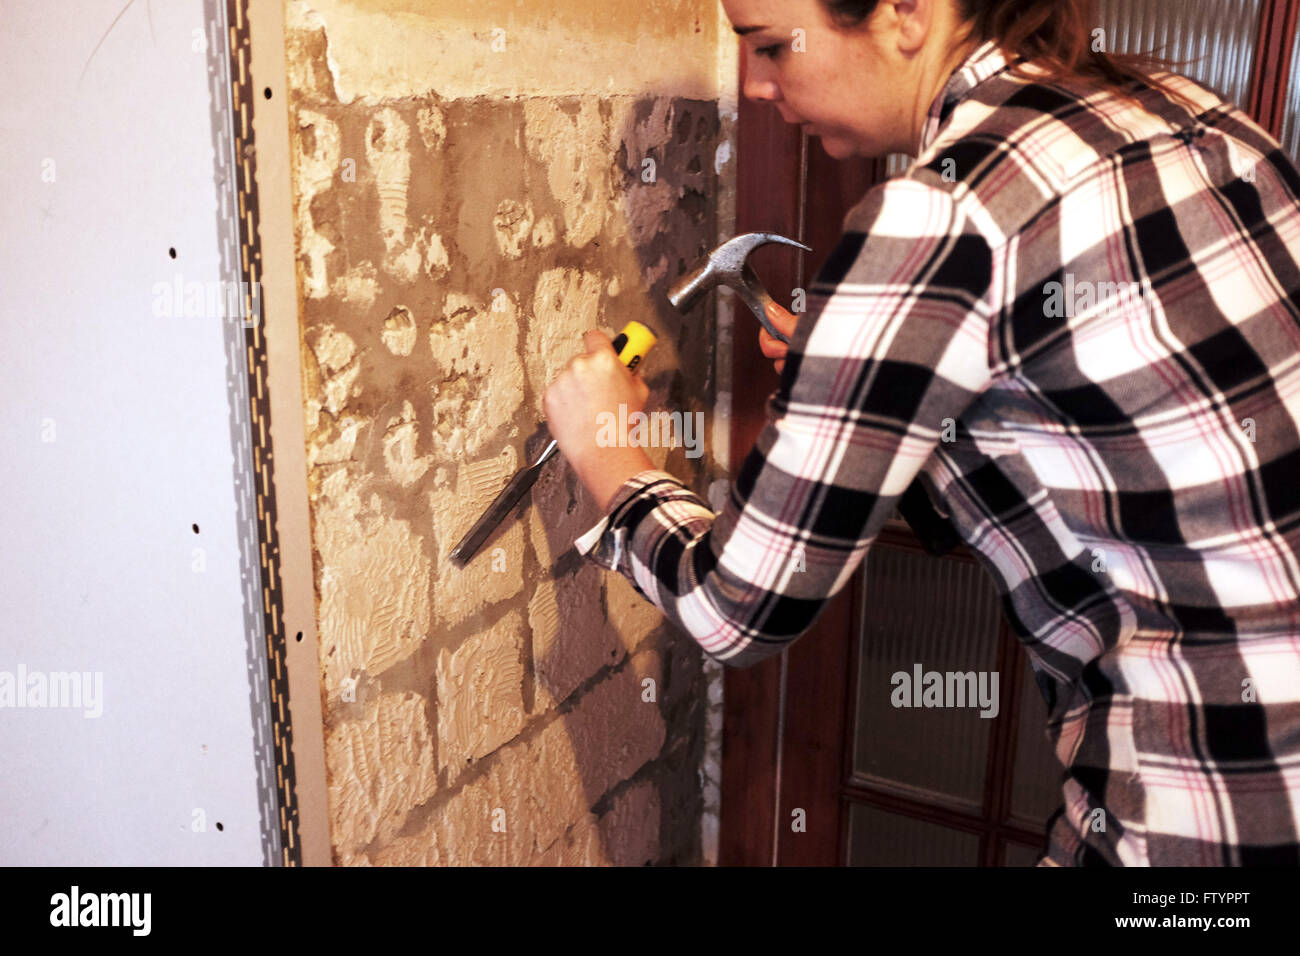 Good Young Woman With Hammer And Chisel Taking Off Wall Tiles In Kitchen In Her  20s Doing DIY At Her Bungalow Home